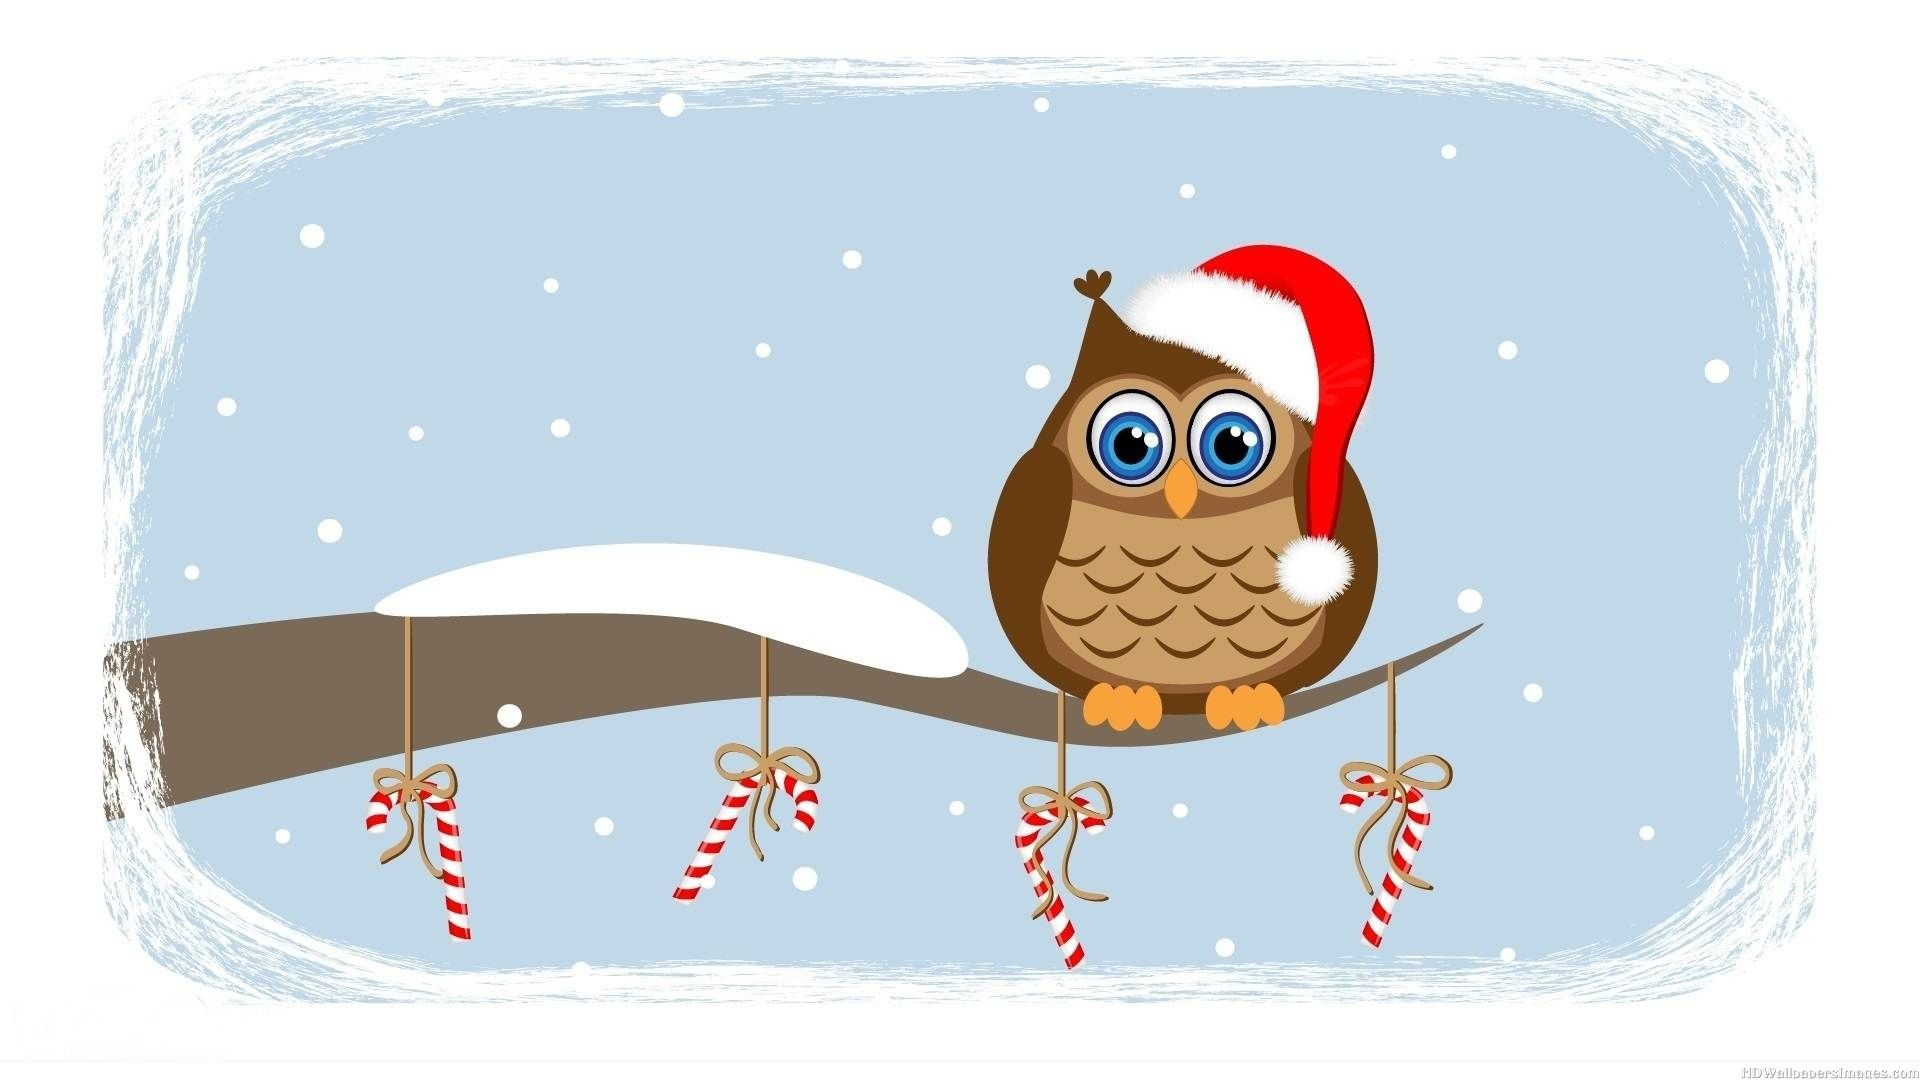 Animated Owl In Ice Images | HD Wallpapers Images